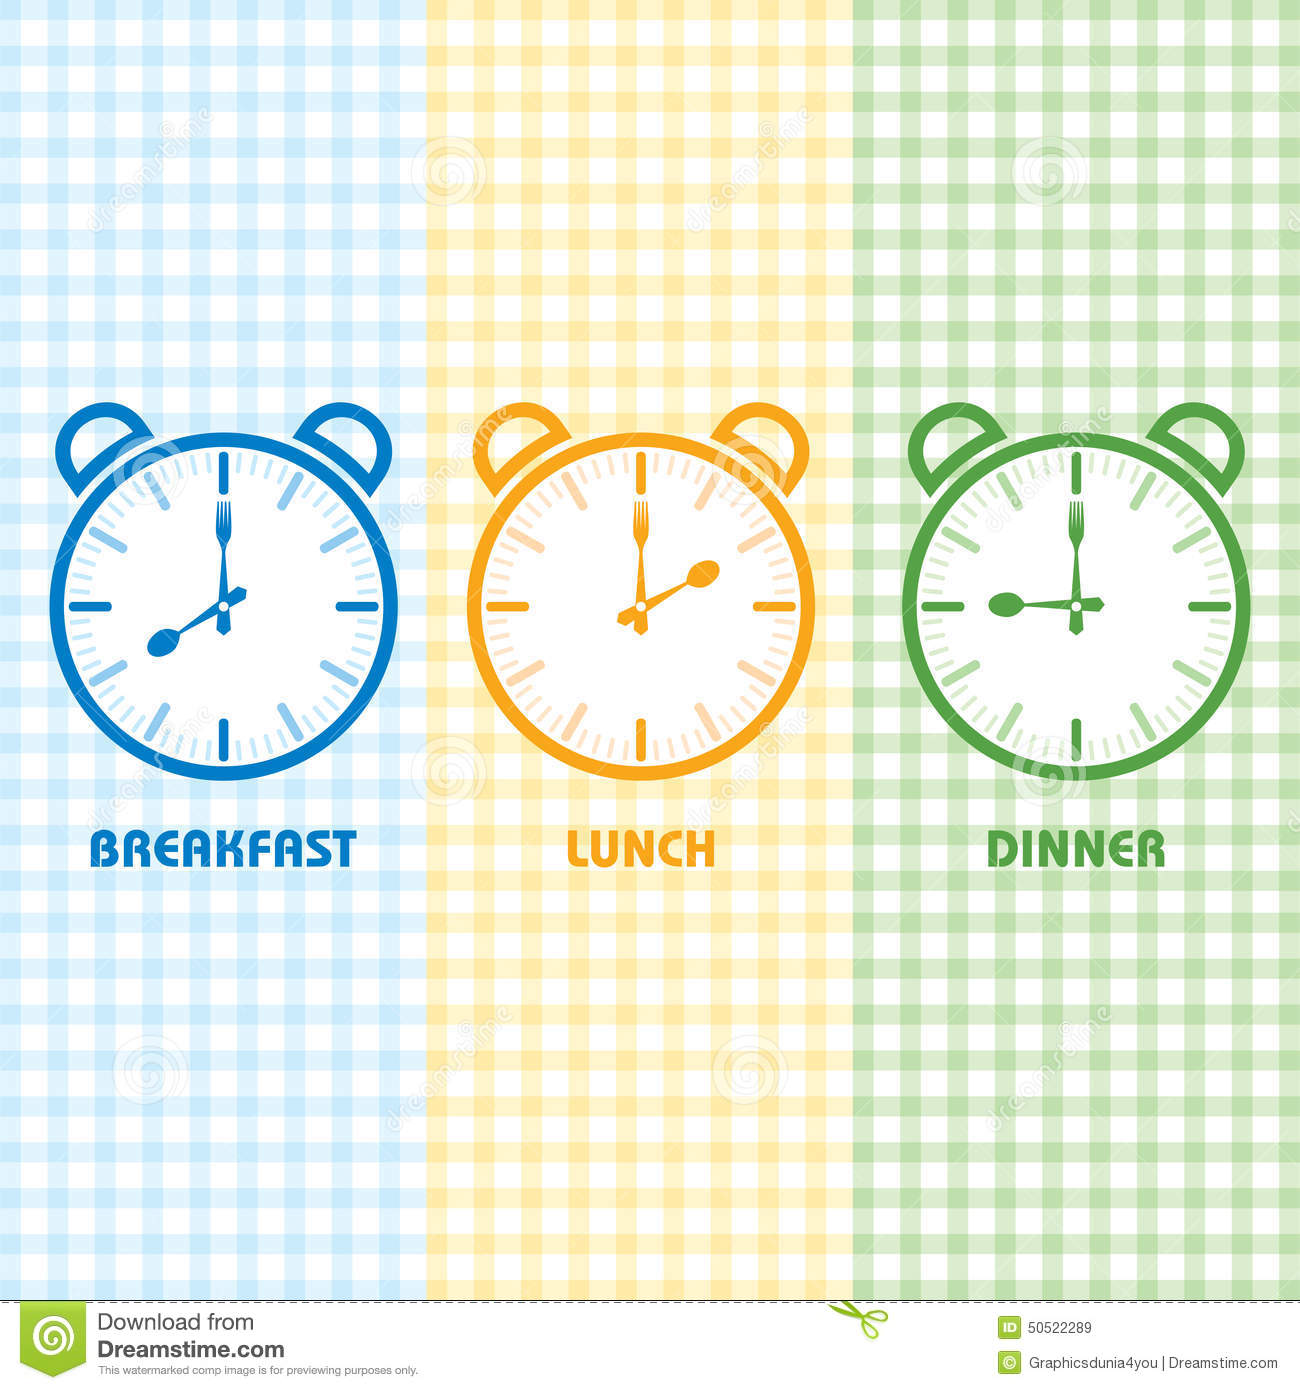 Breakfast clipart breakfast time Dinner and Breakfast collection lunch